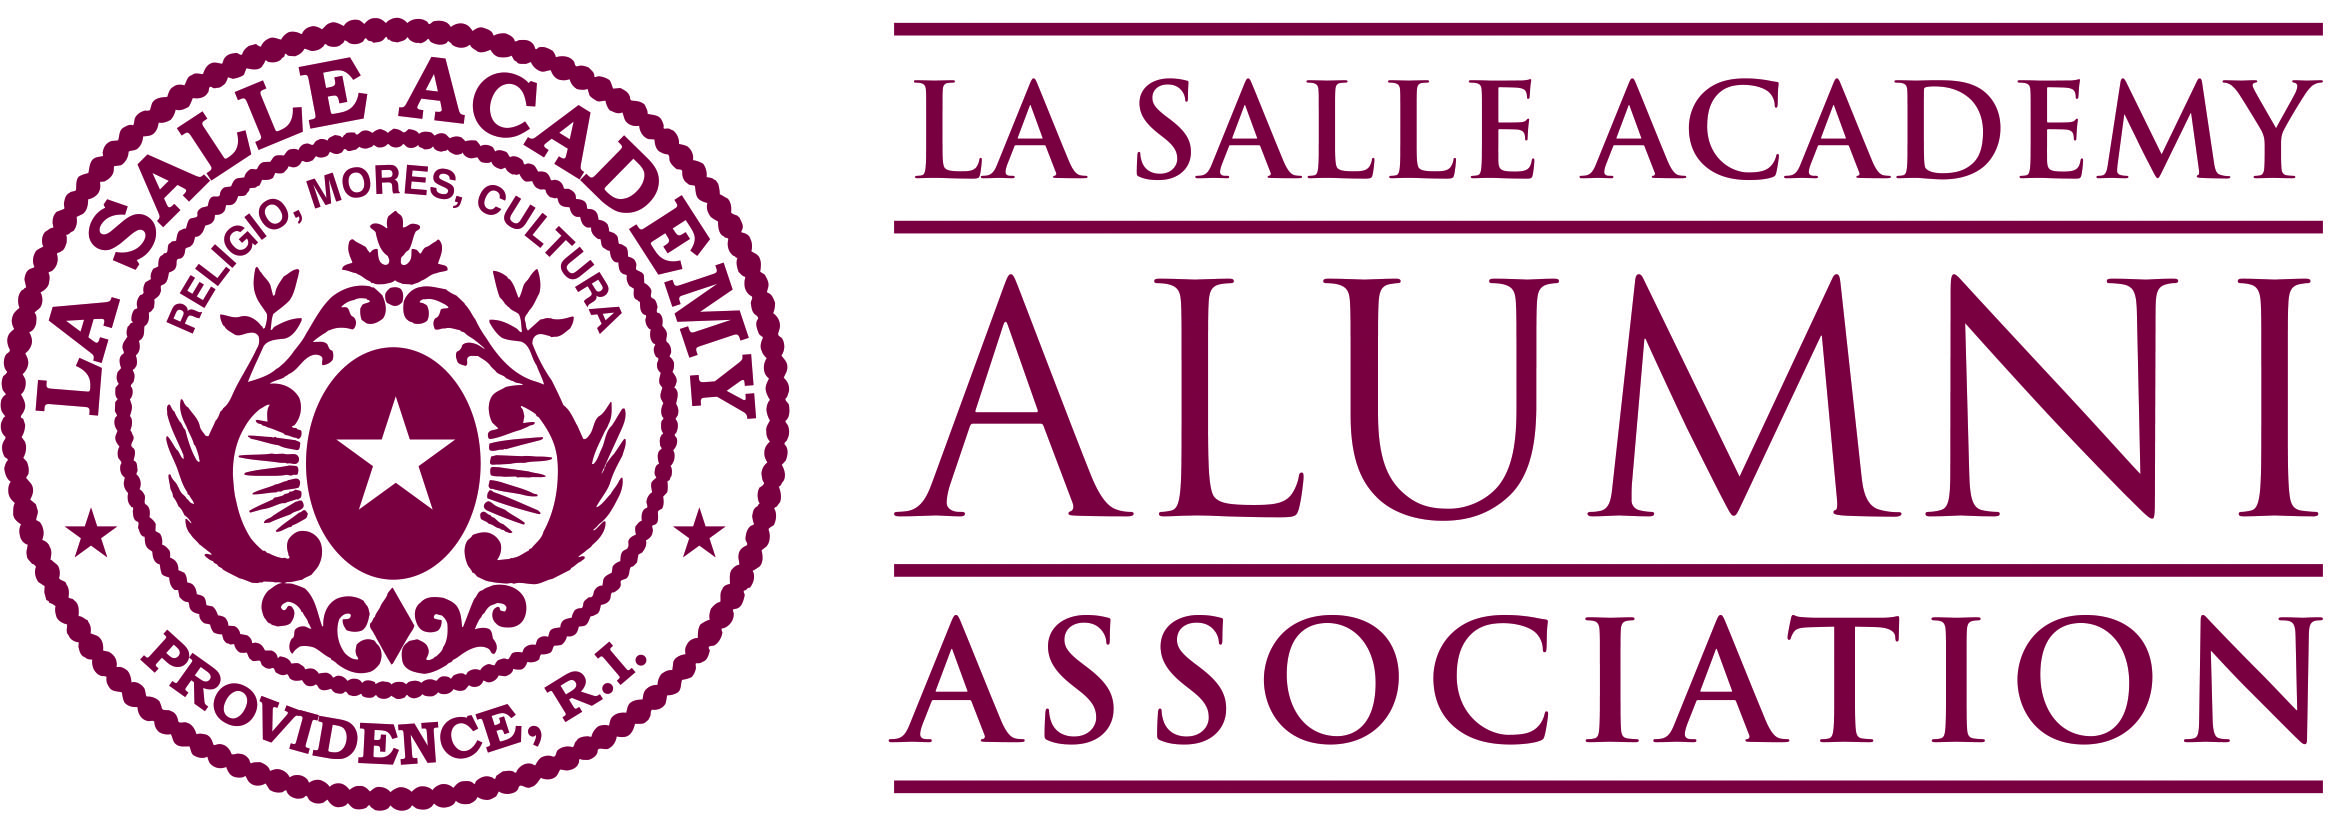 Alumni Association/Vendor Program Logo Here